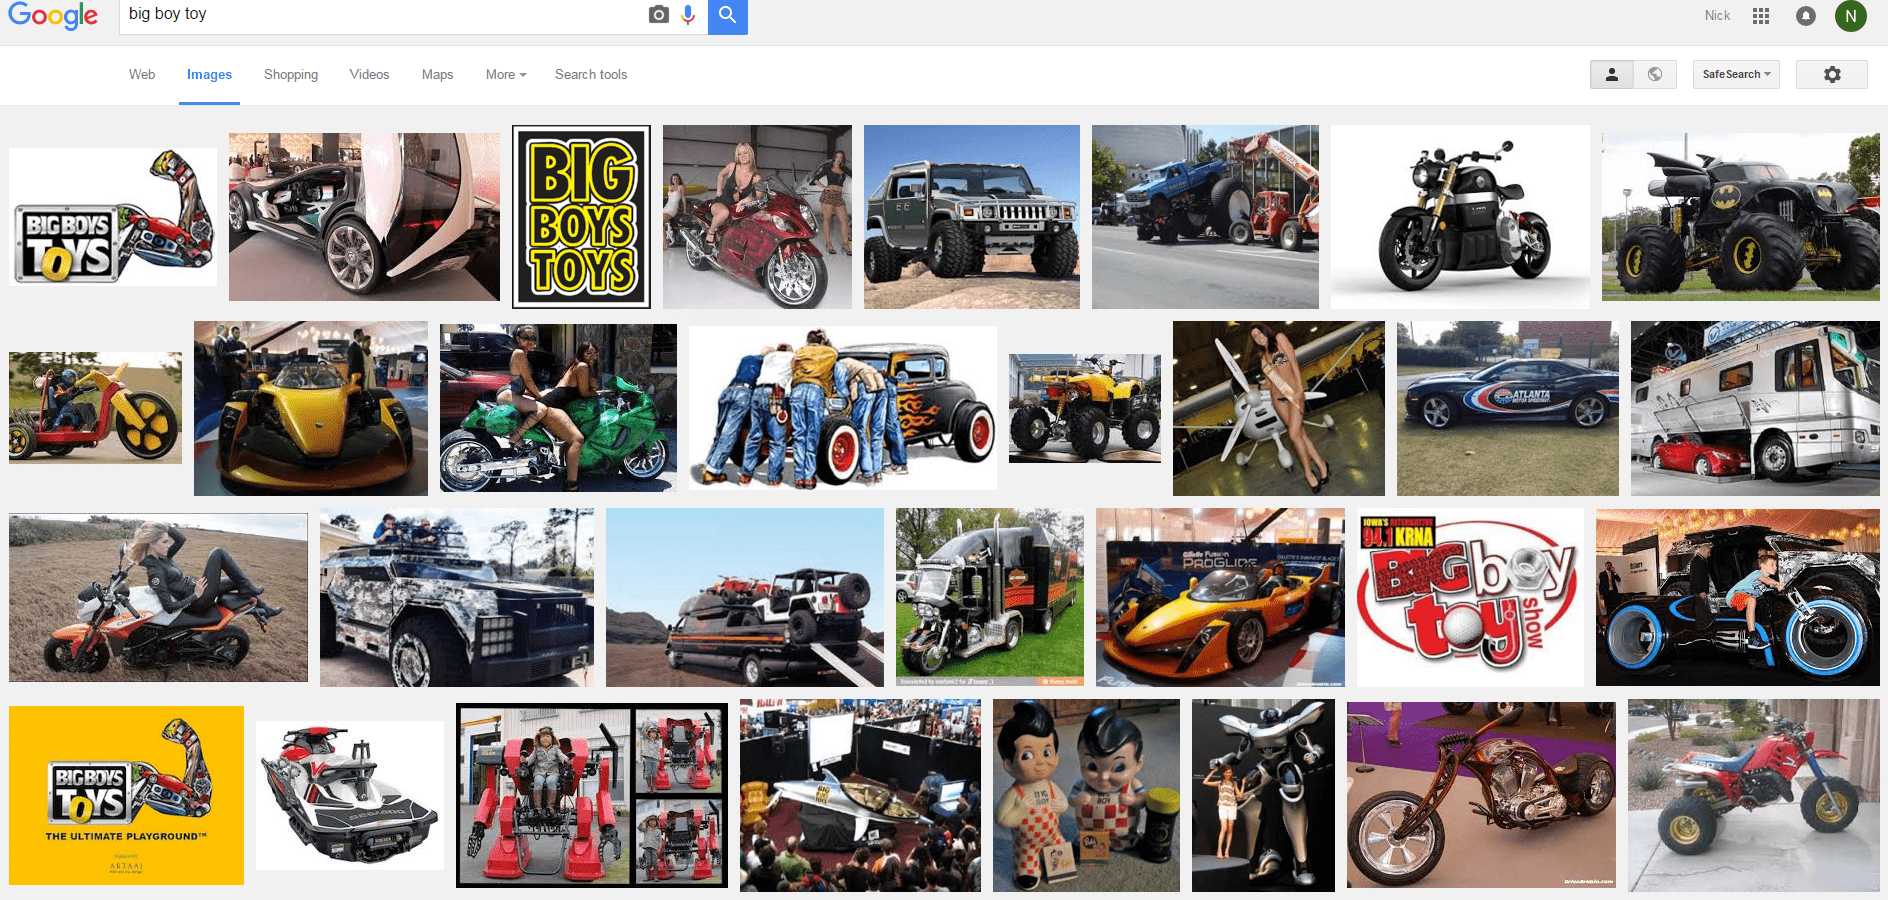 2015-12-02 05_51_50-big boy toy - Google Search.png